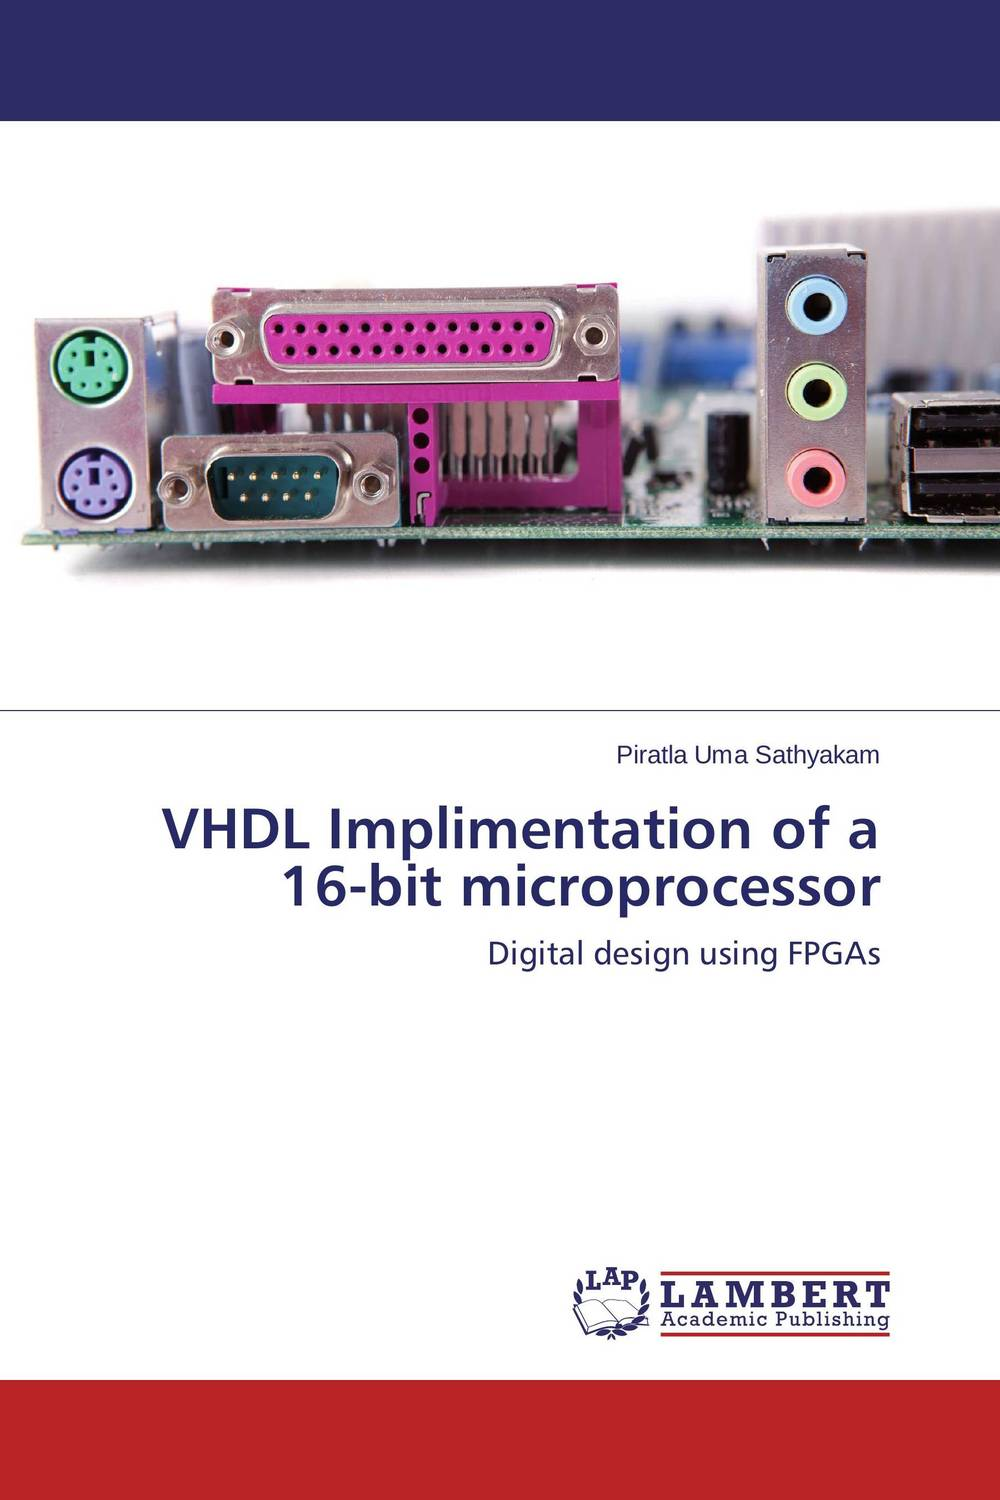 VHDL Implimentation of a 16-bit microprocessor abdulkreem mohameed and ahlam fadhil software hardware design and implementation of jpeg codec on fpga